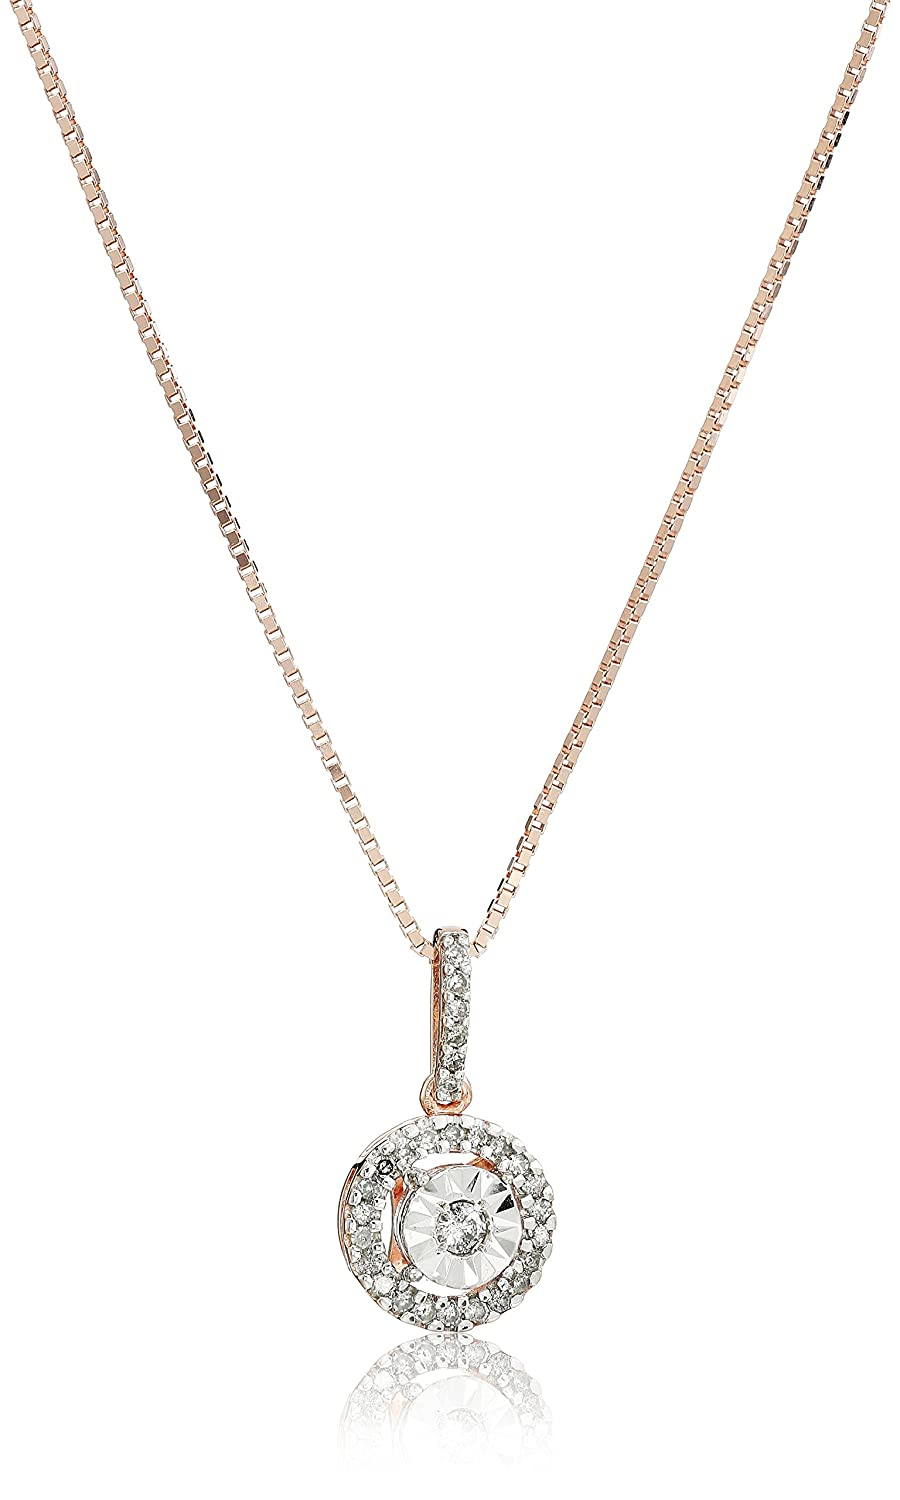 18k Rose Gold Over Sterling Silver Diamond Miracle Plate Pendant Necklace (1/5cttw, I-J Color, I2-I3 Clarity), 18""